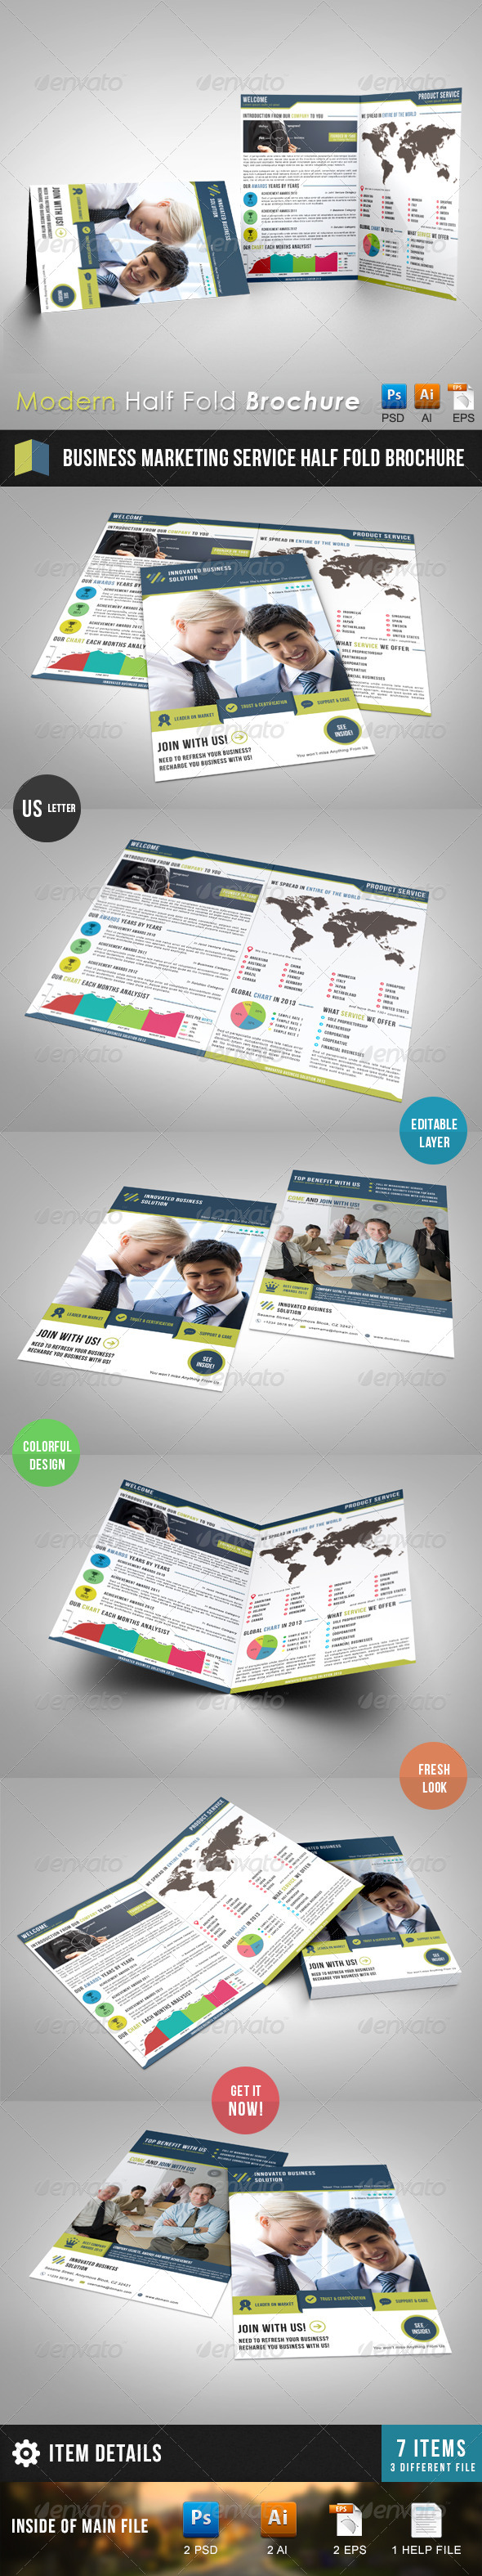 Business Marketing Service Half Fold Brochure - Corporate Brochures